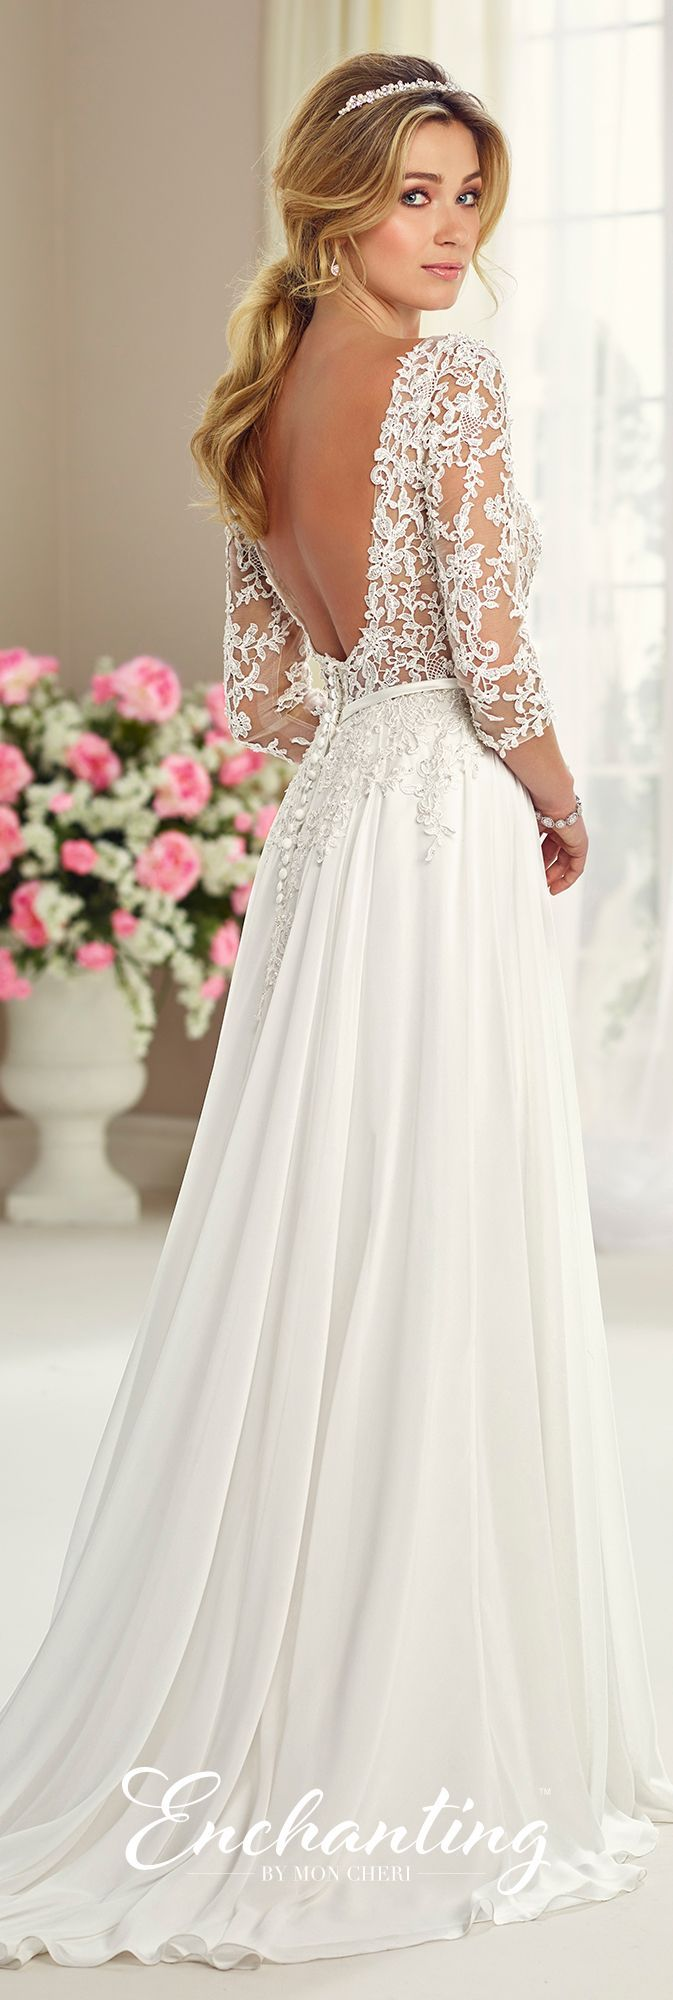 Chiffon tulle lace wedding gown enchanting by mon for Fall lace wedding dresses